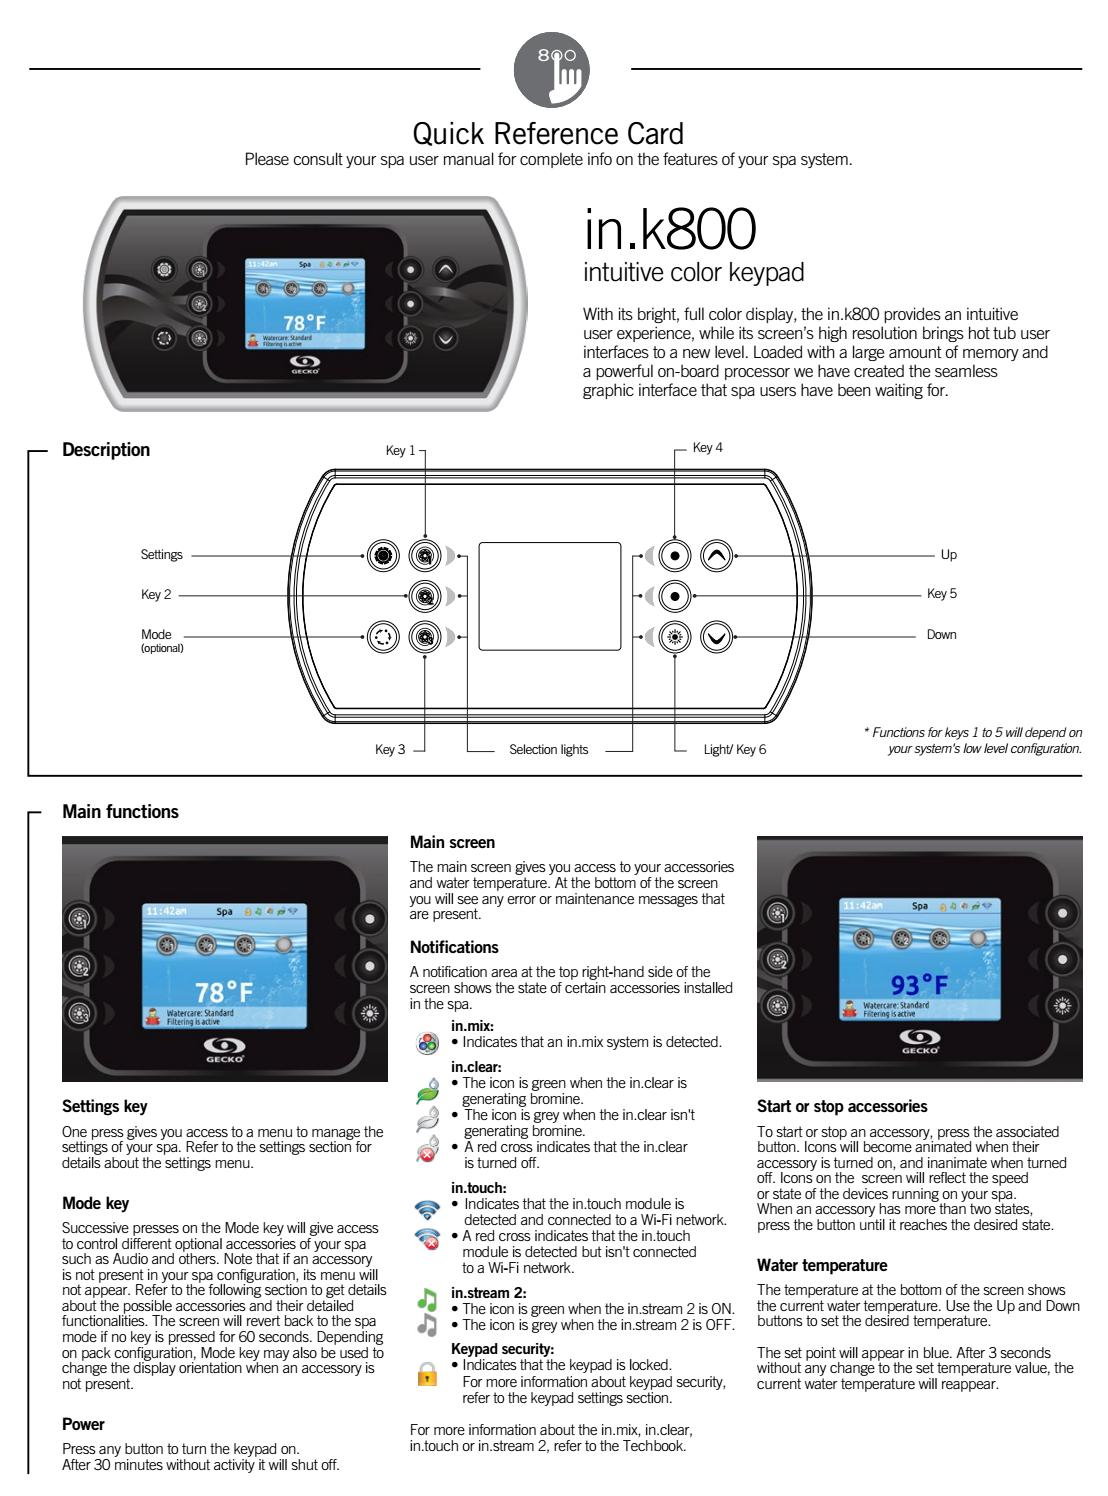 in.k800 color keypad quick reference card by Gecko